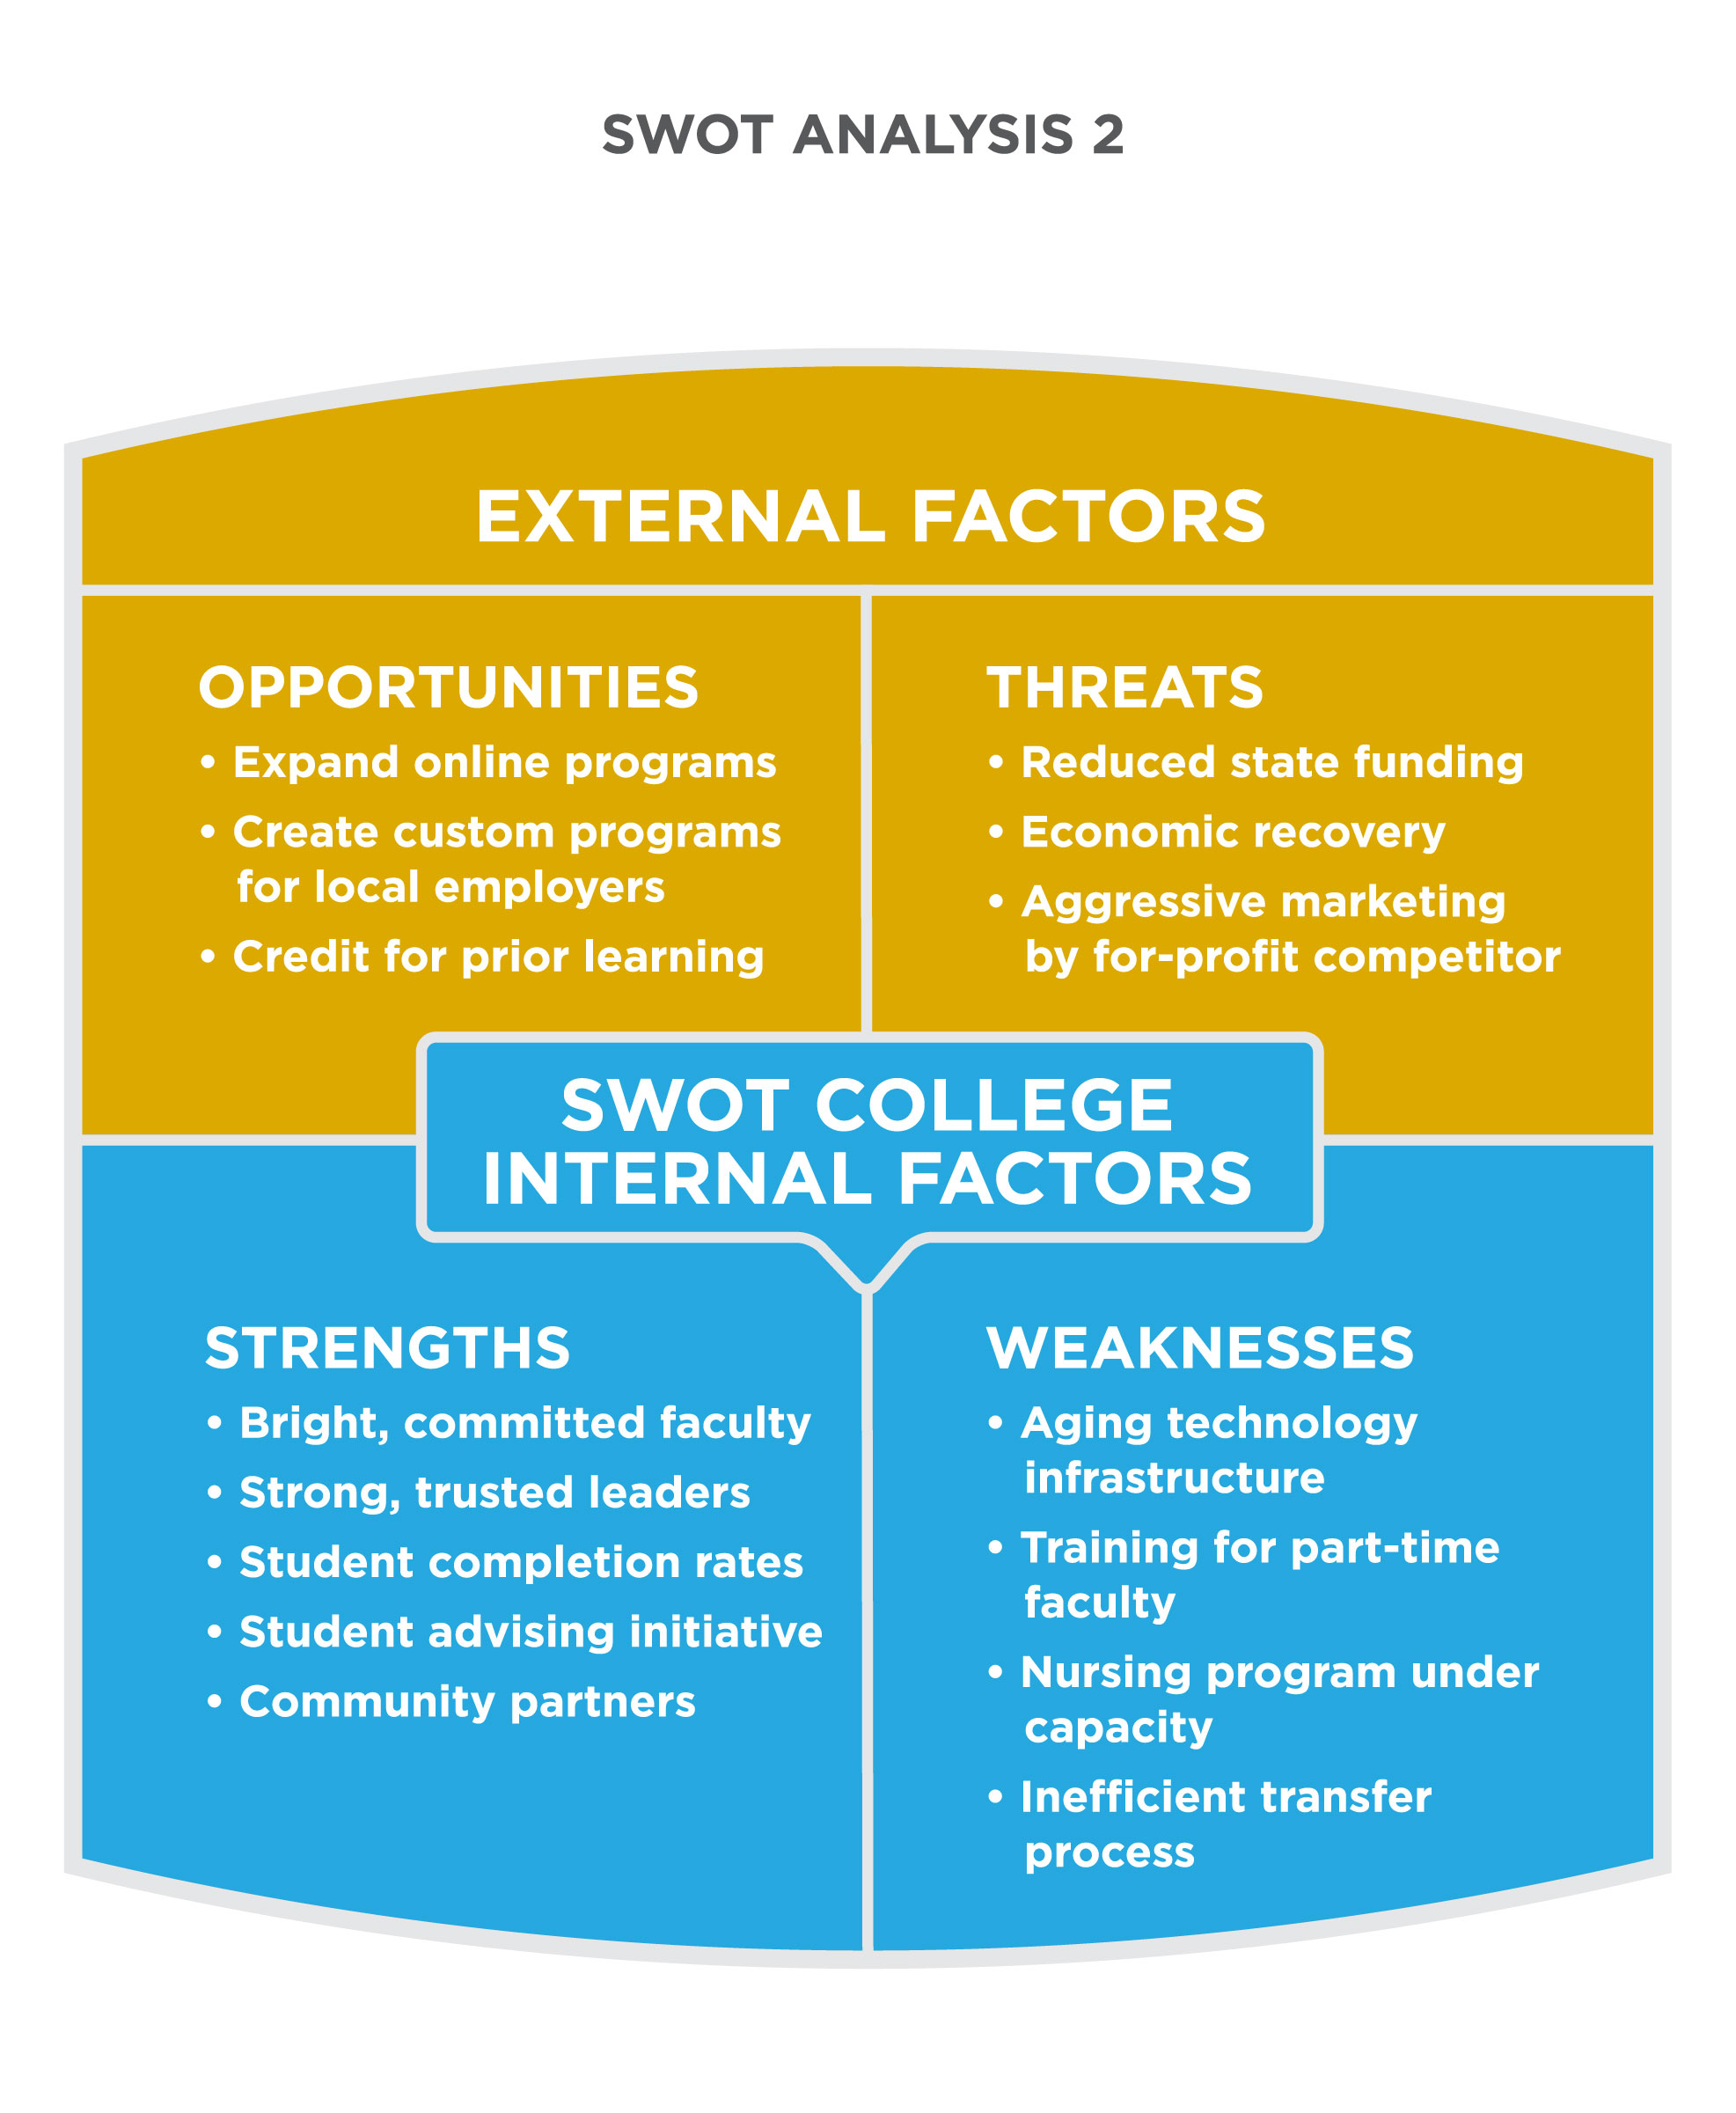 SWOT Analysis 2 For SWOT College. Under External Factors, Opportunities  Include Expand Online Programs